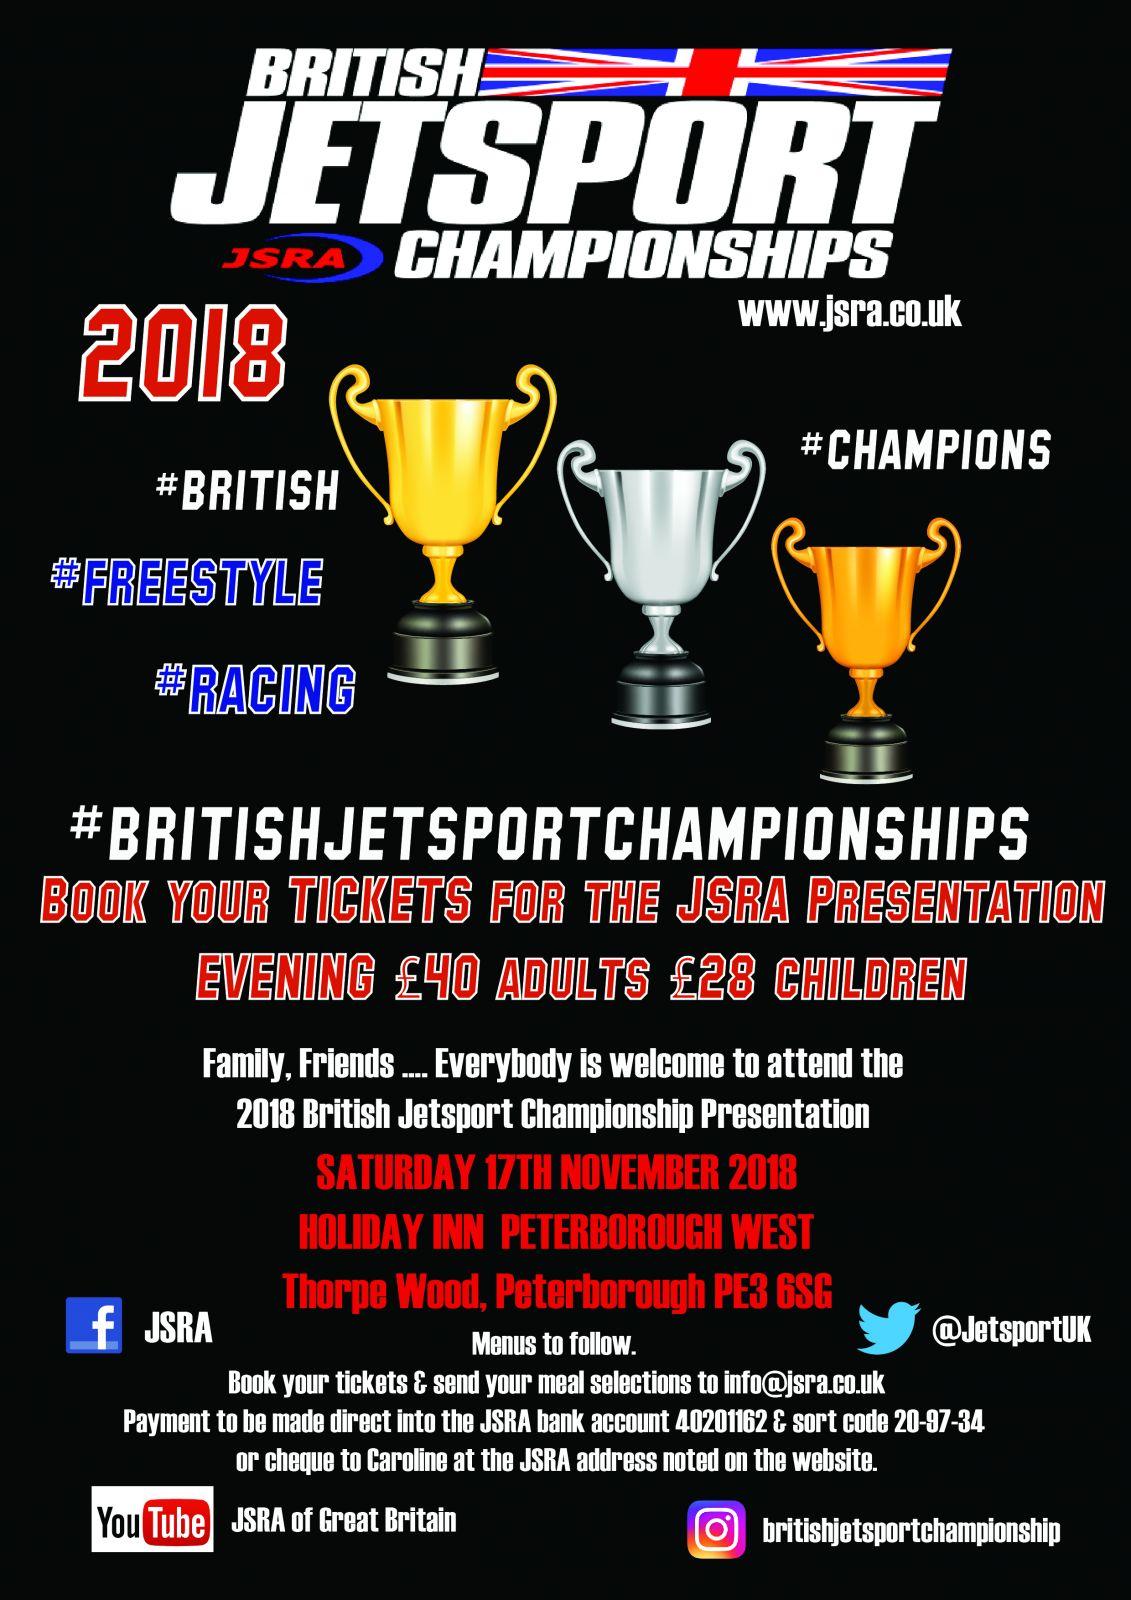 JSRA British Jetsport Championships 2018 Presentation Evening Dinner